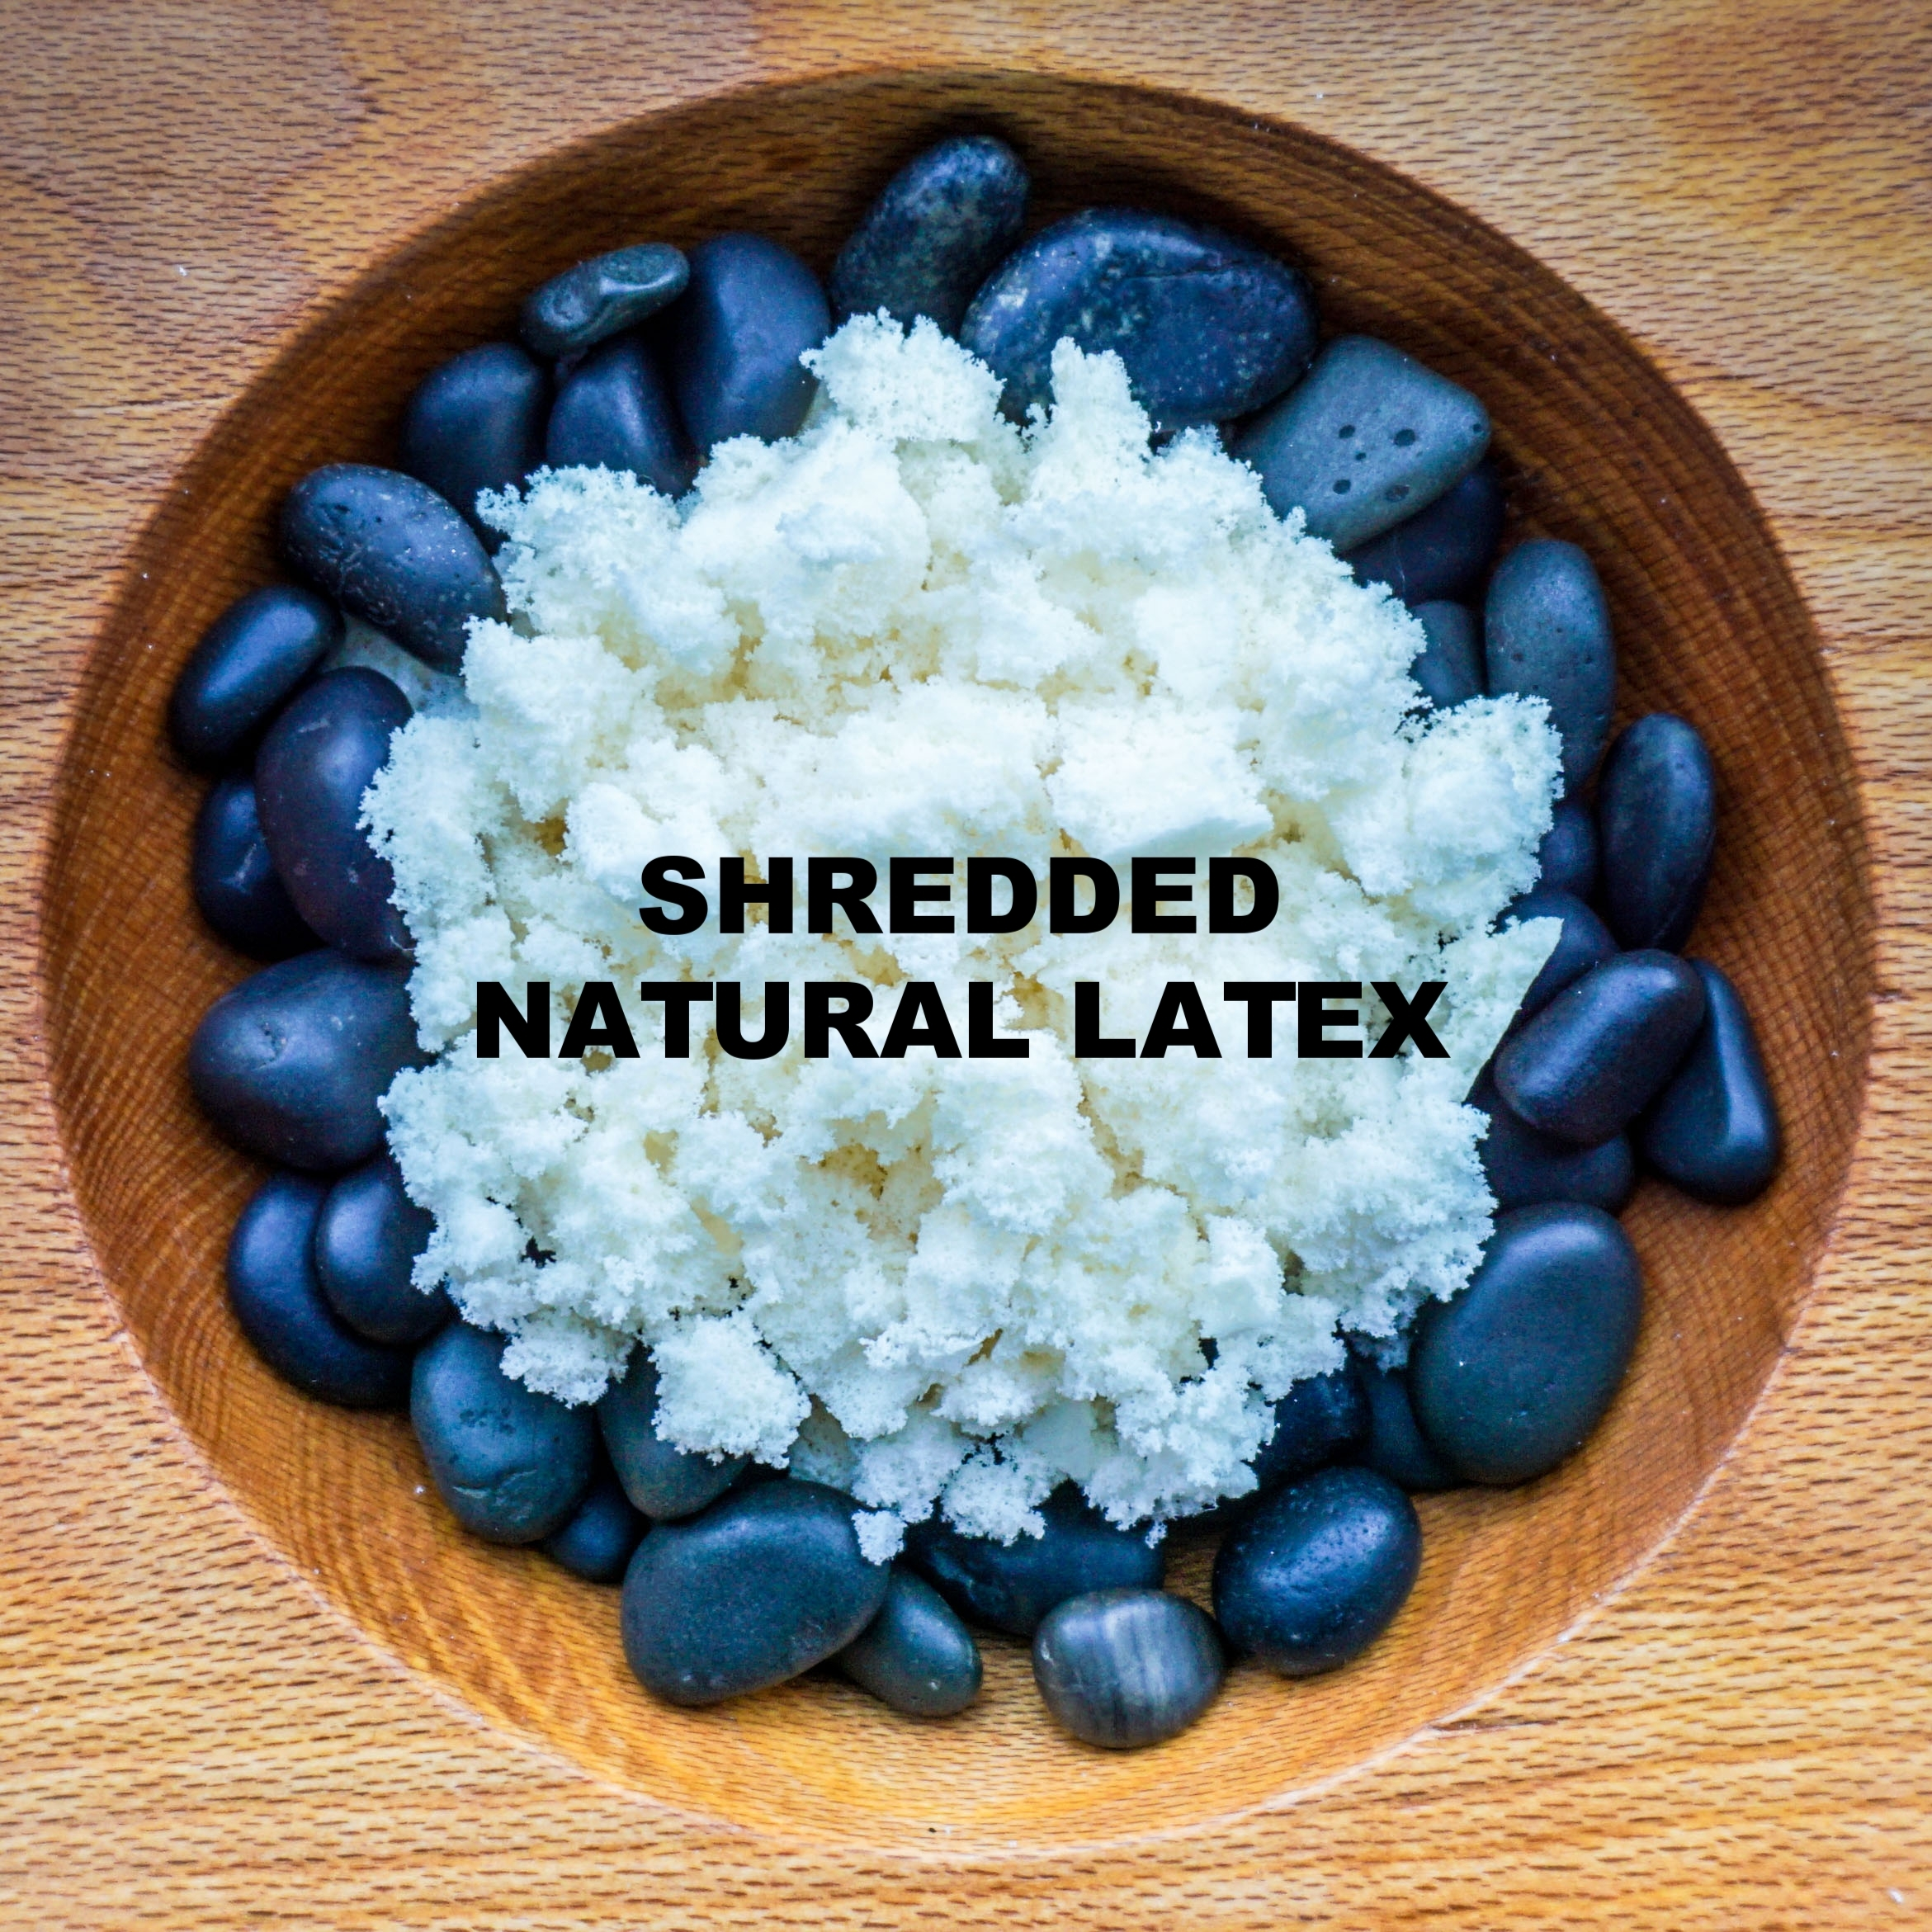 SHREDDED NATURAL LATEX